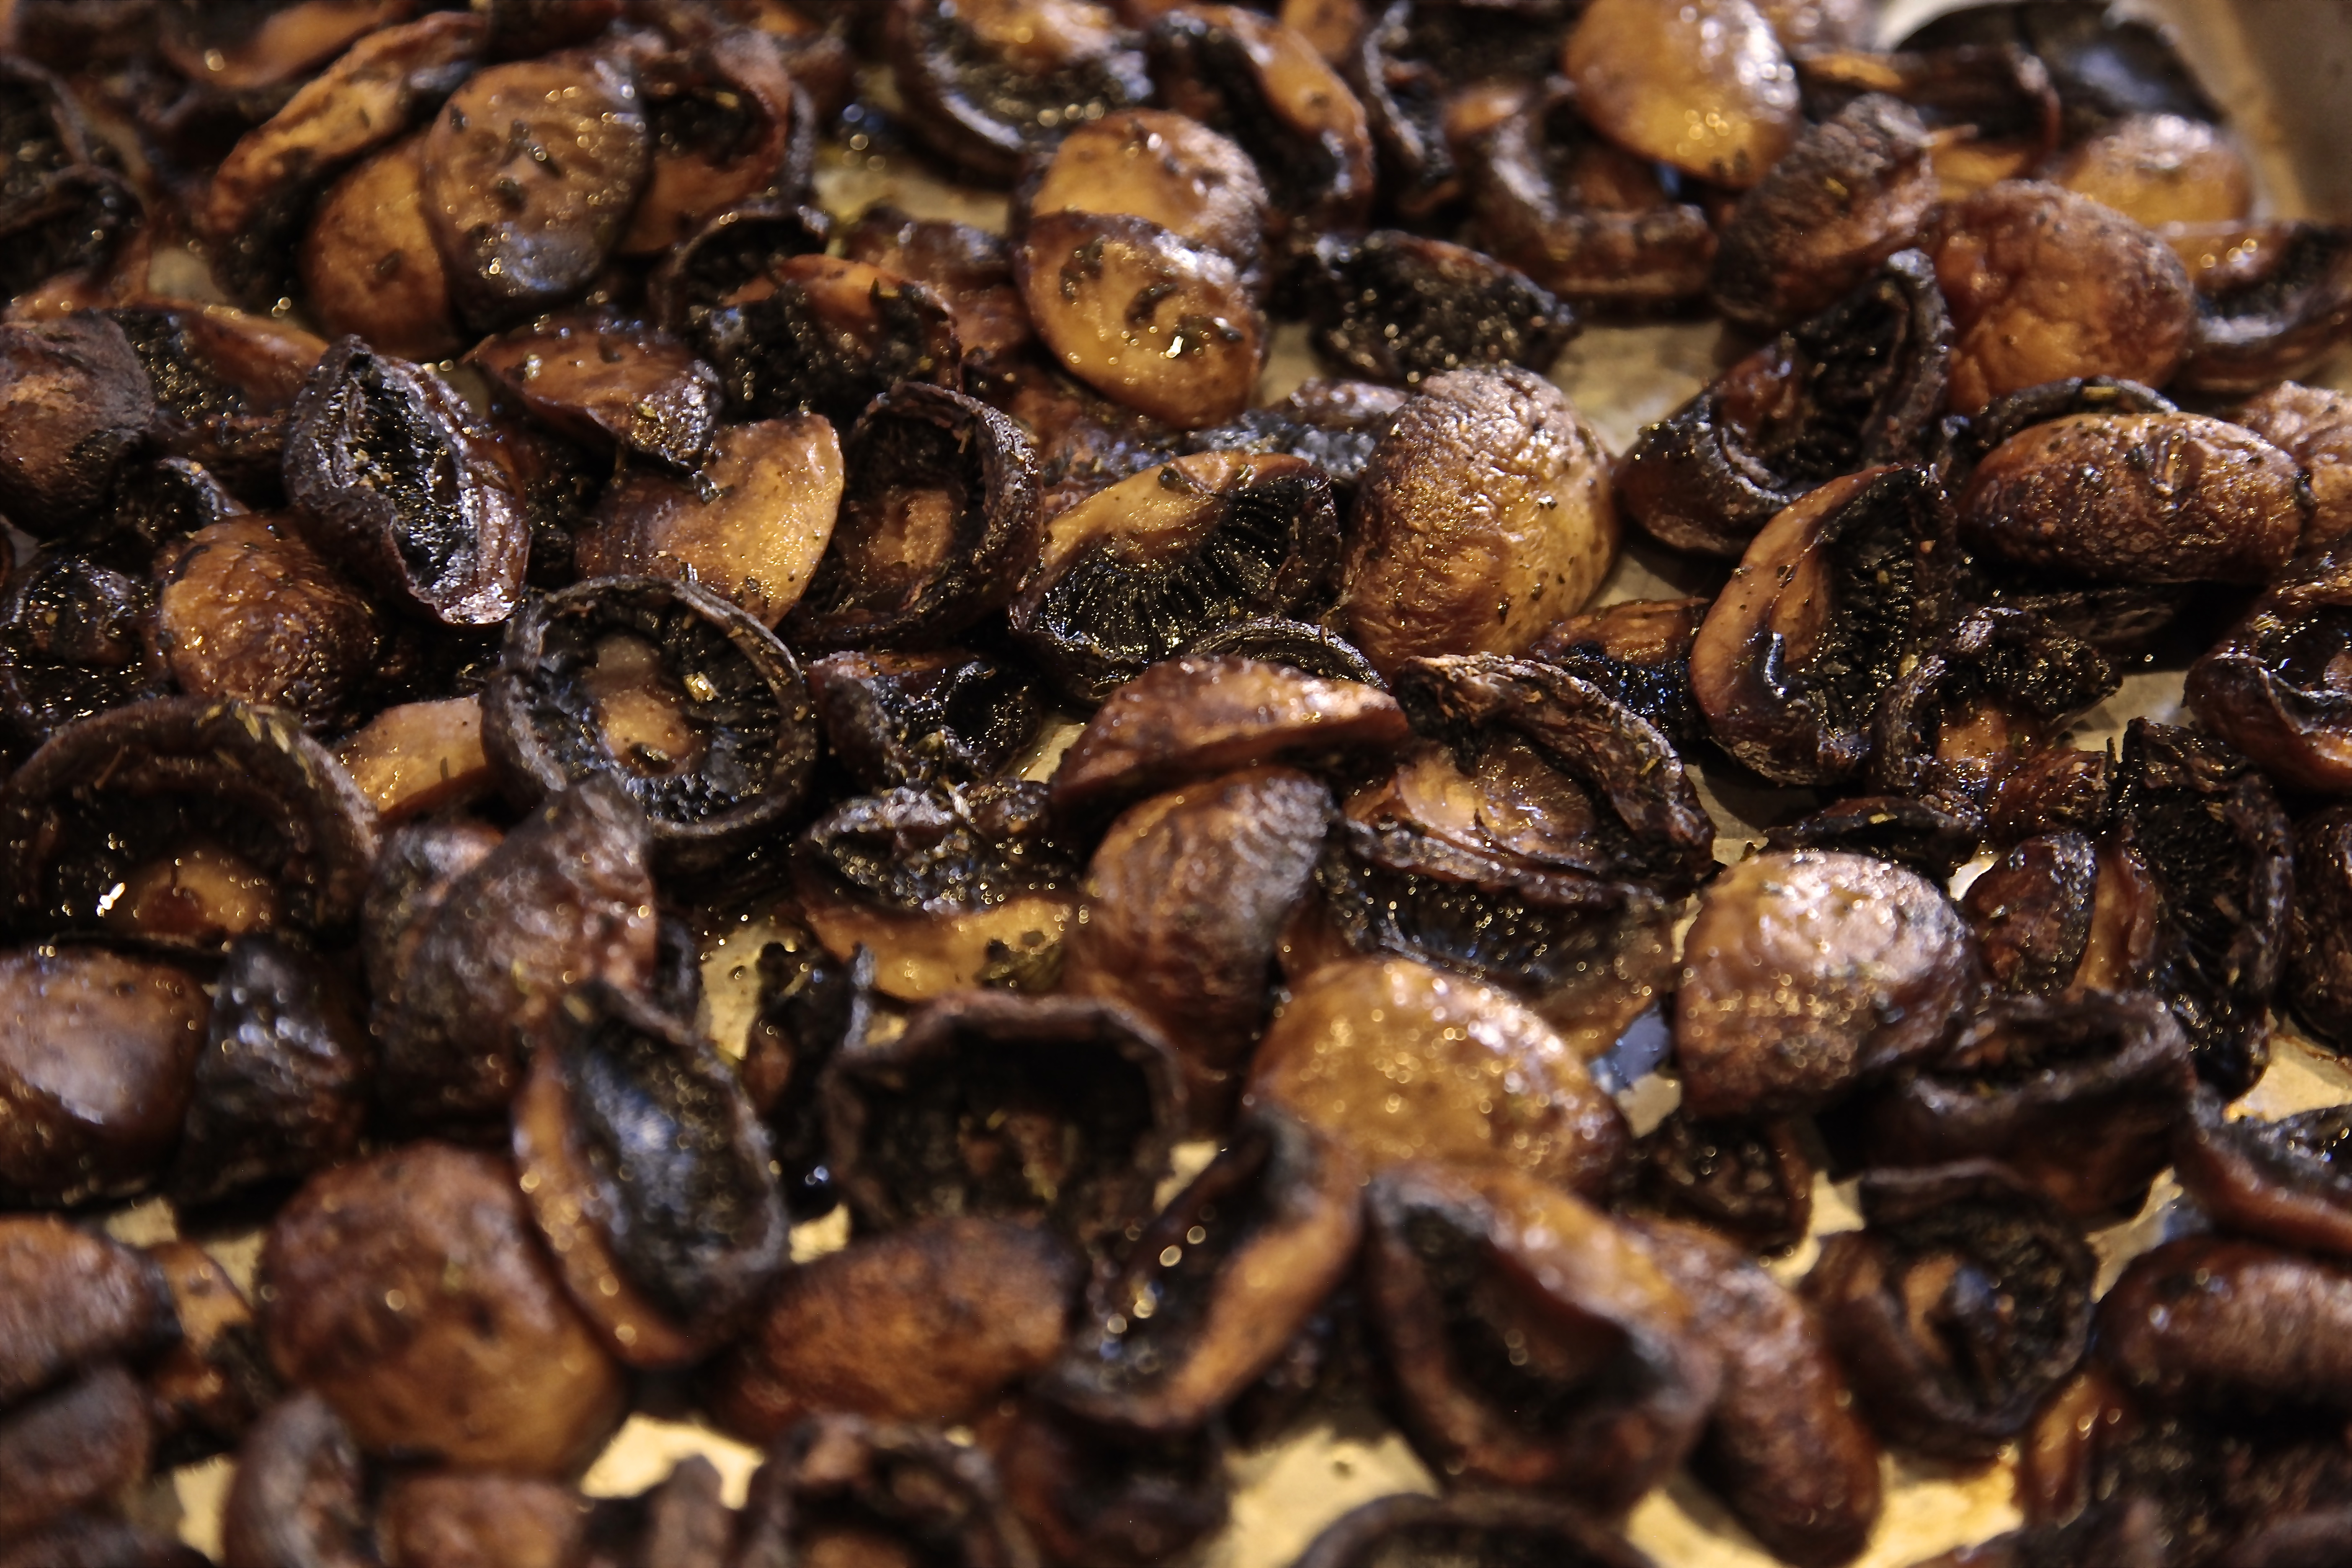 Roast approximately 15 minutes until mushrooms are completely cooked.